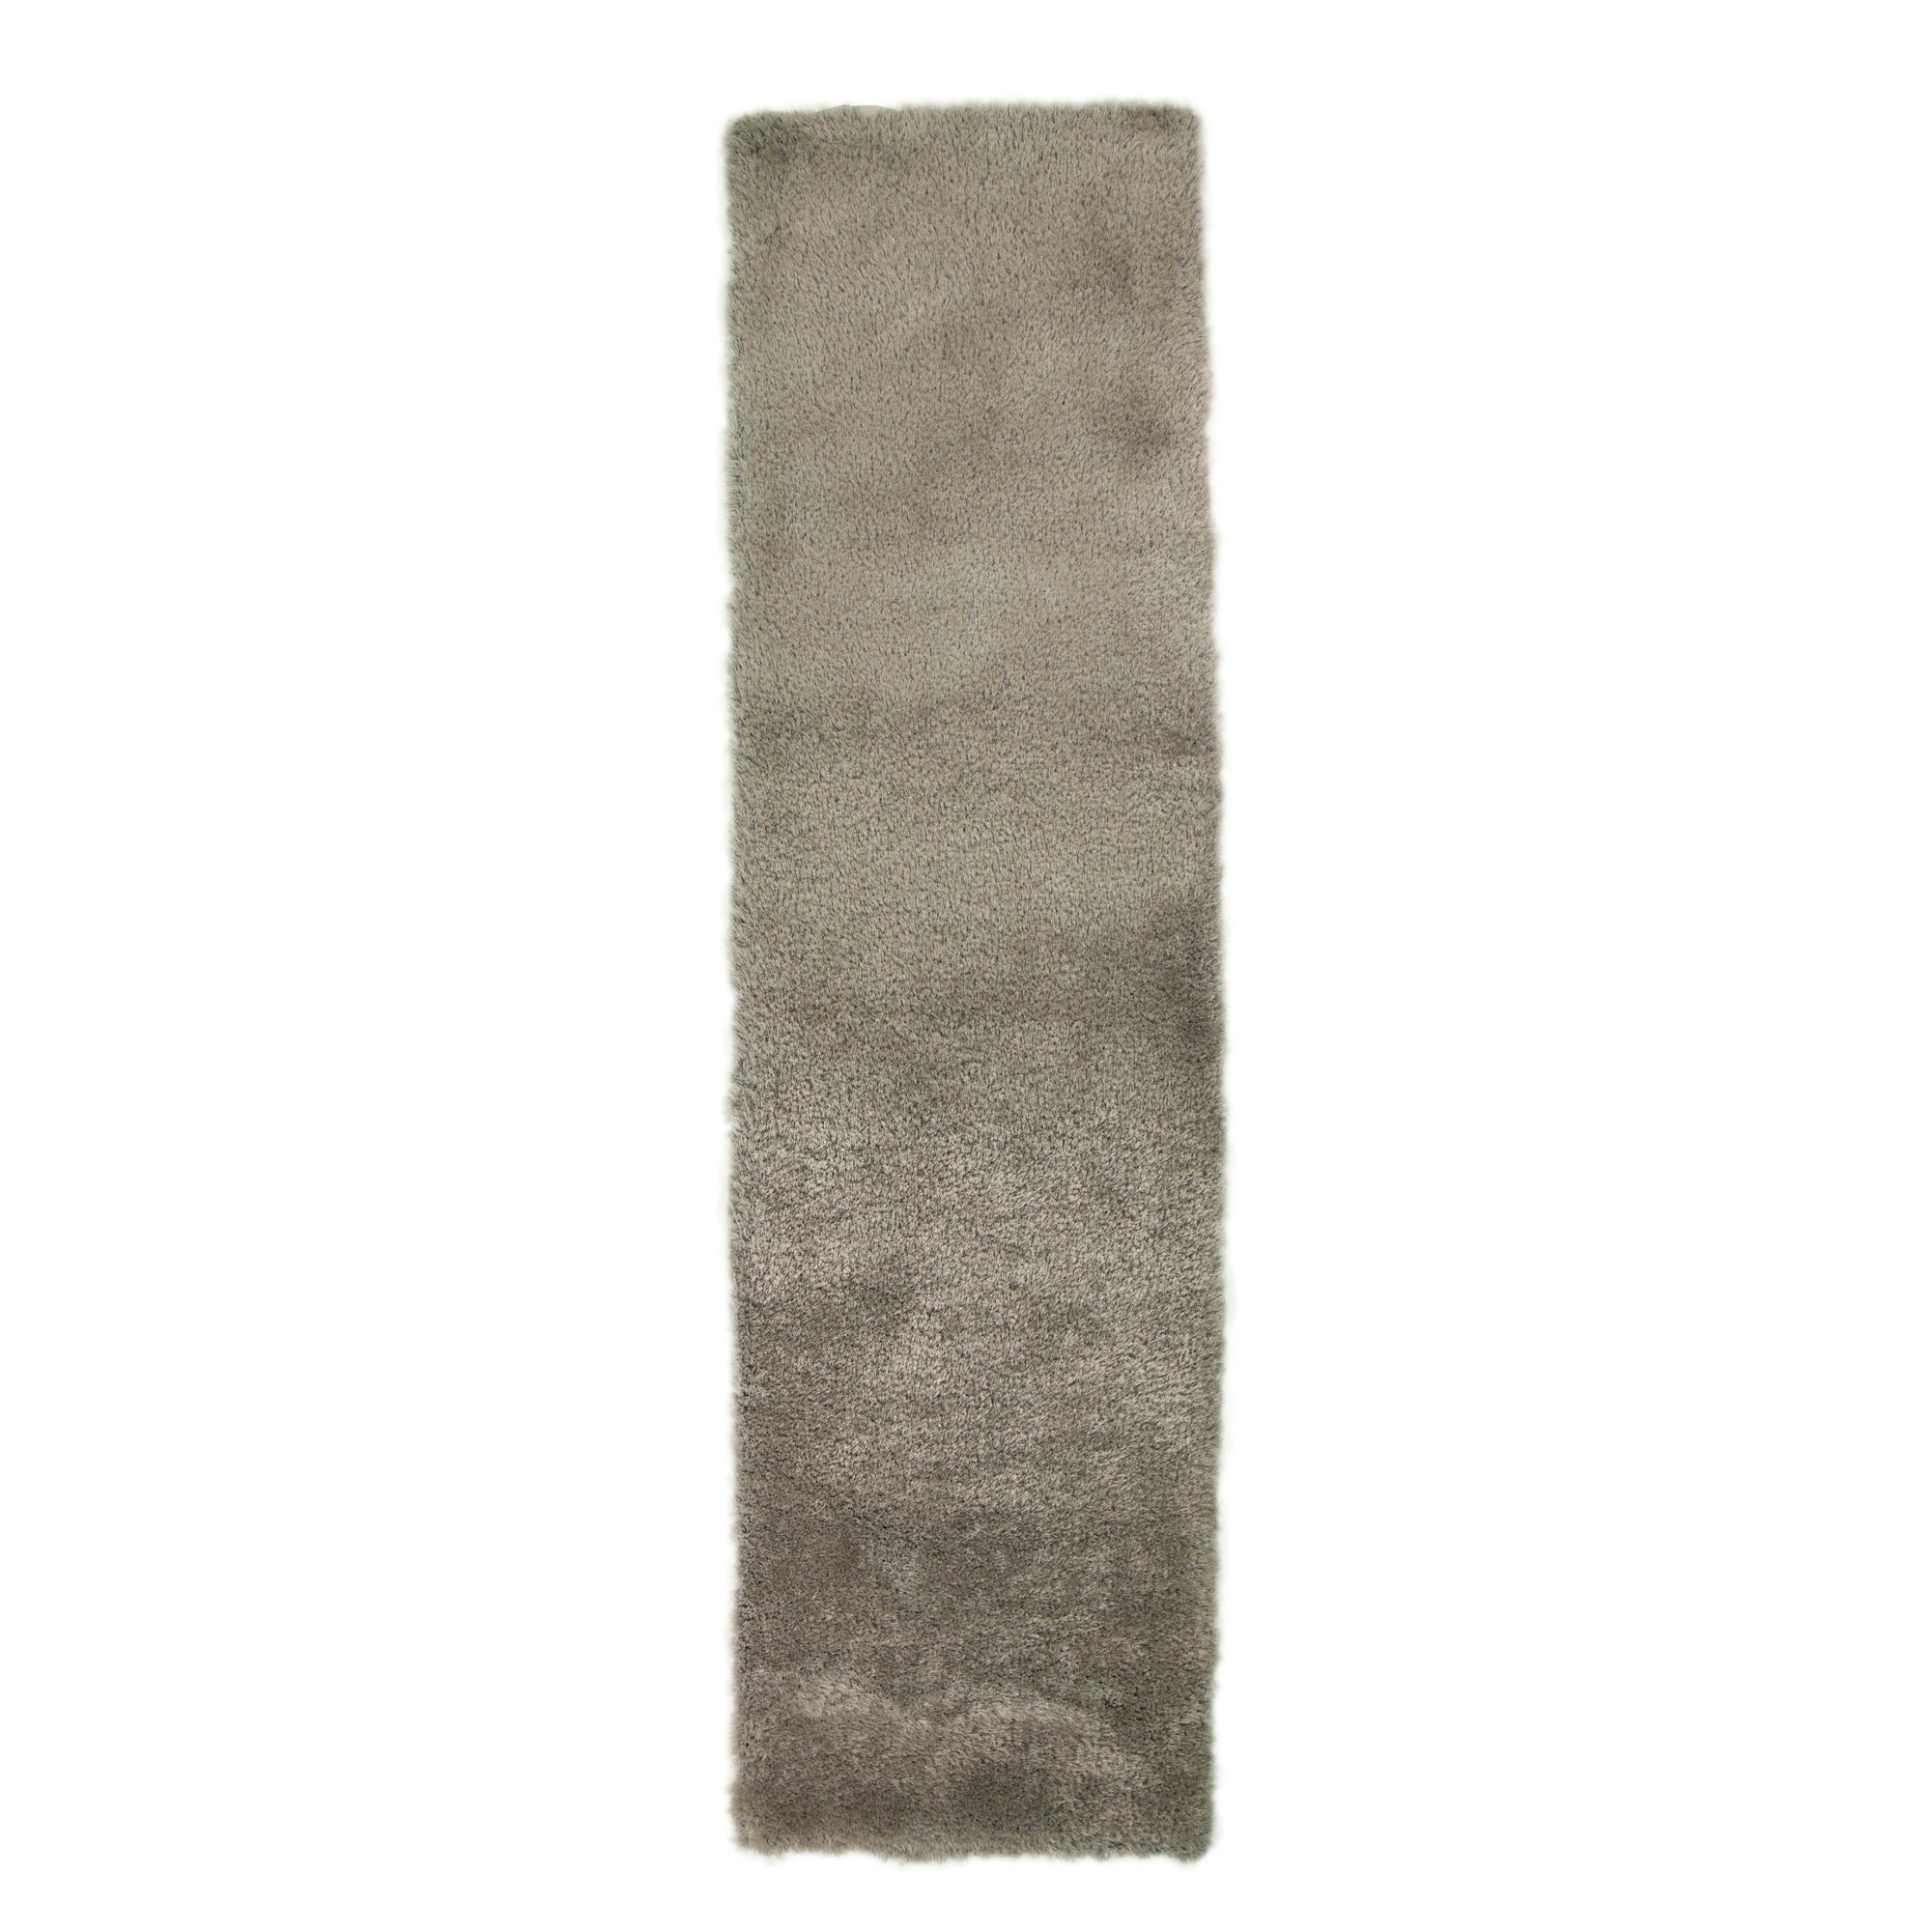 Indulgence Shaggy Runner Grey